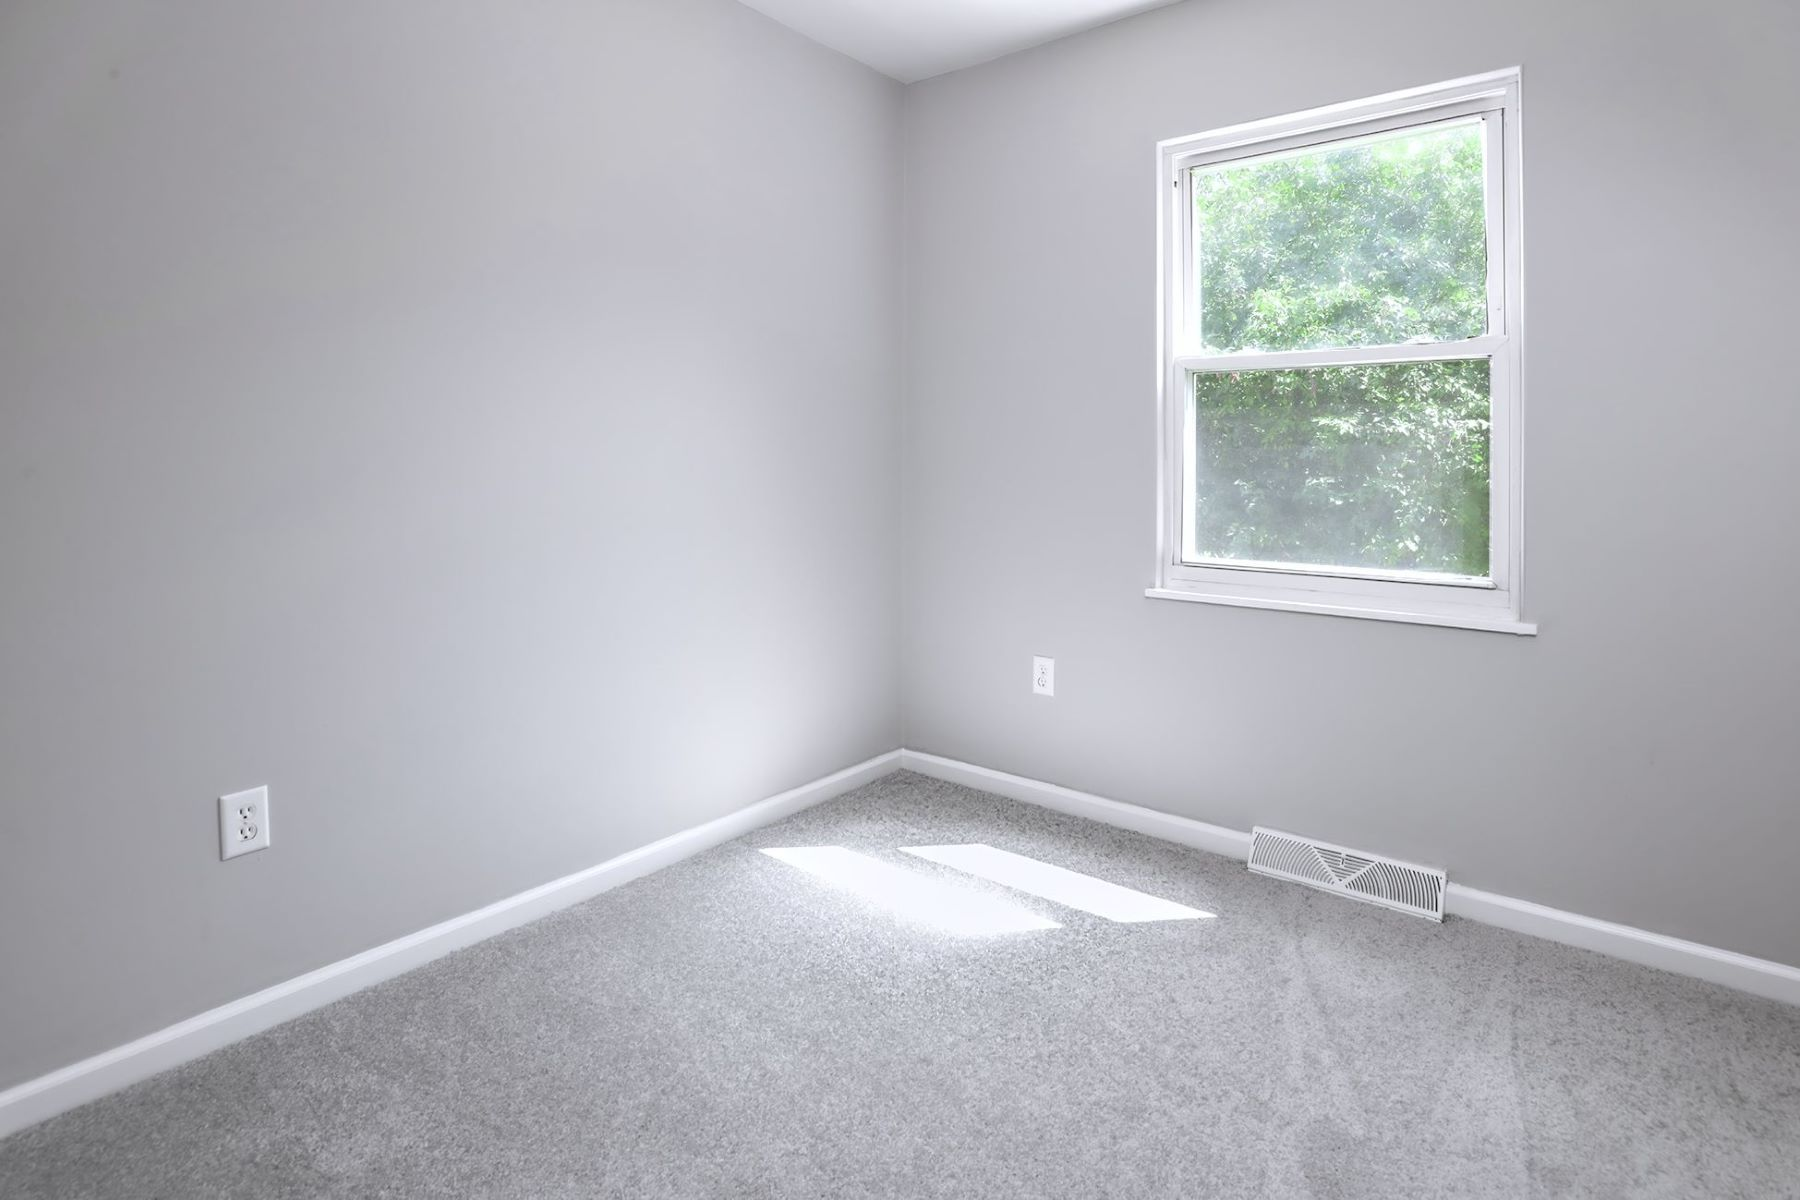 Additional photo for property listing at Just the Right Size to Move In and Enjoy 125 Glenn Avenue, Lawrence Township, New Jersey 08648 United States